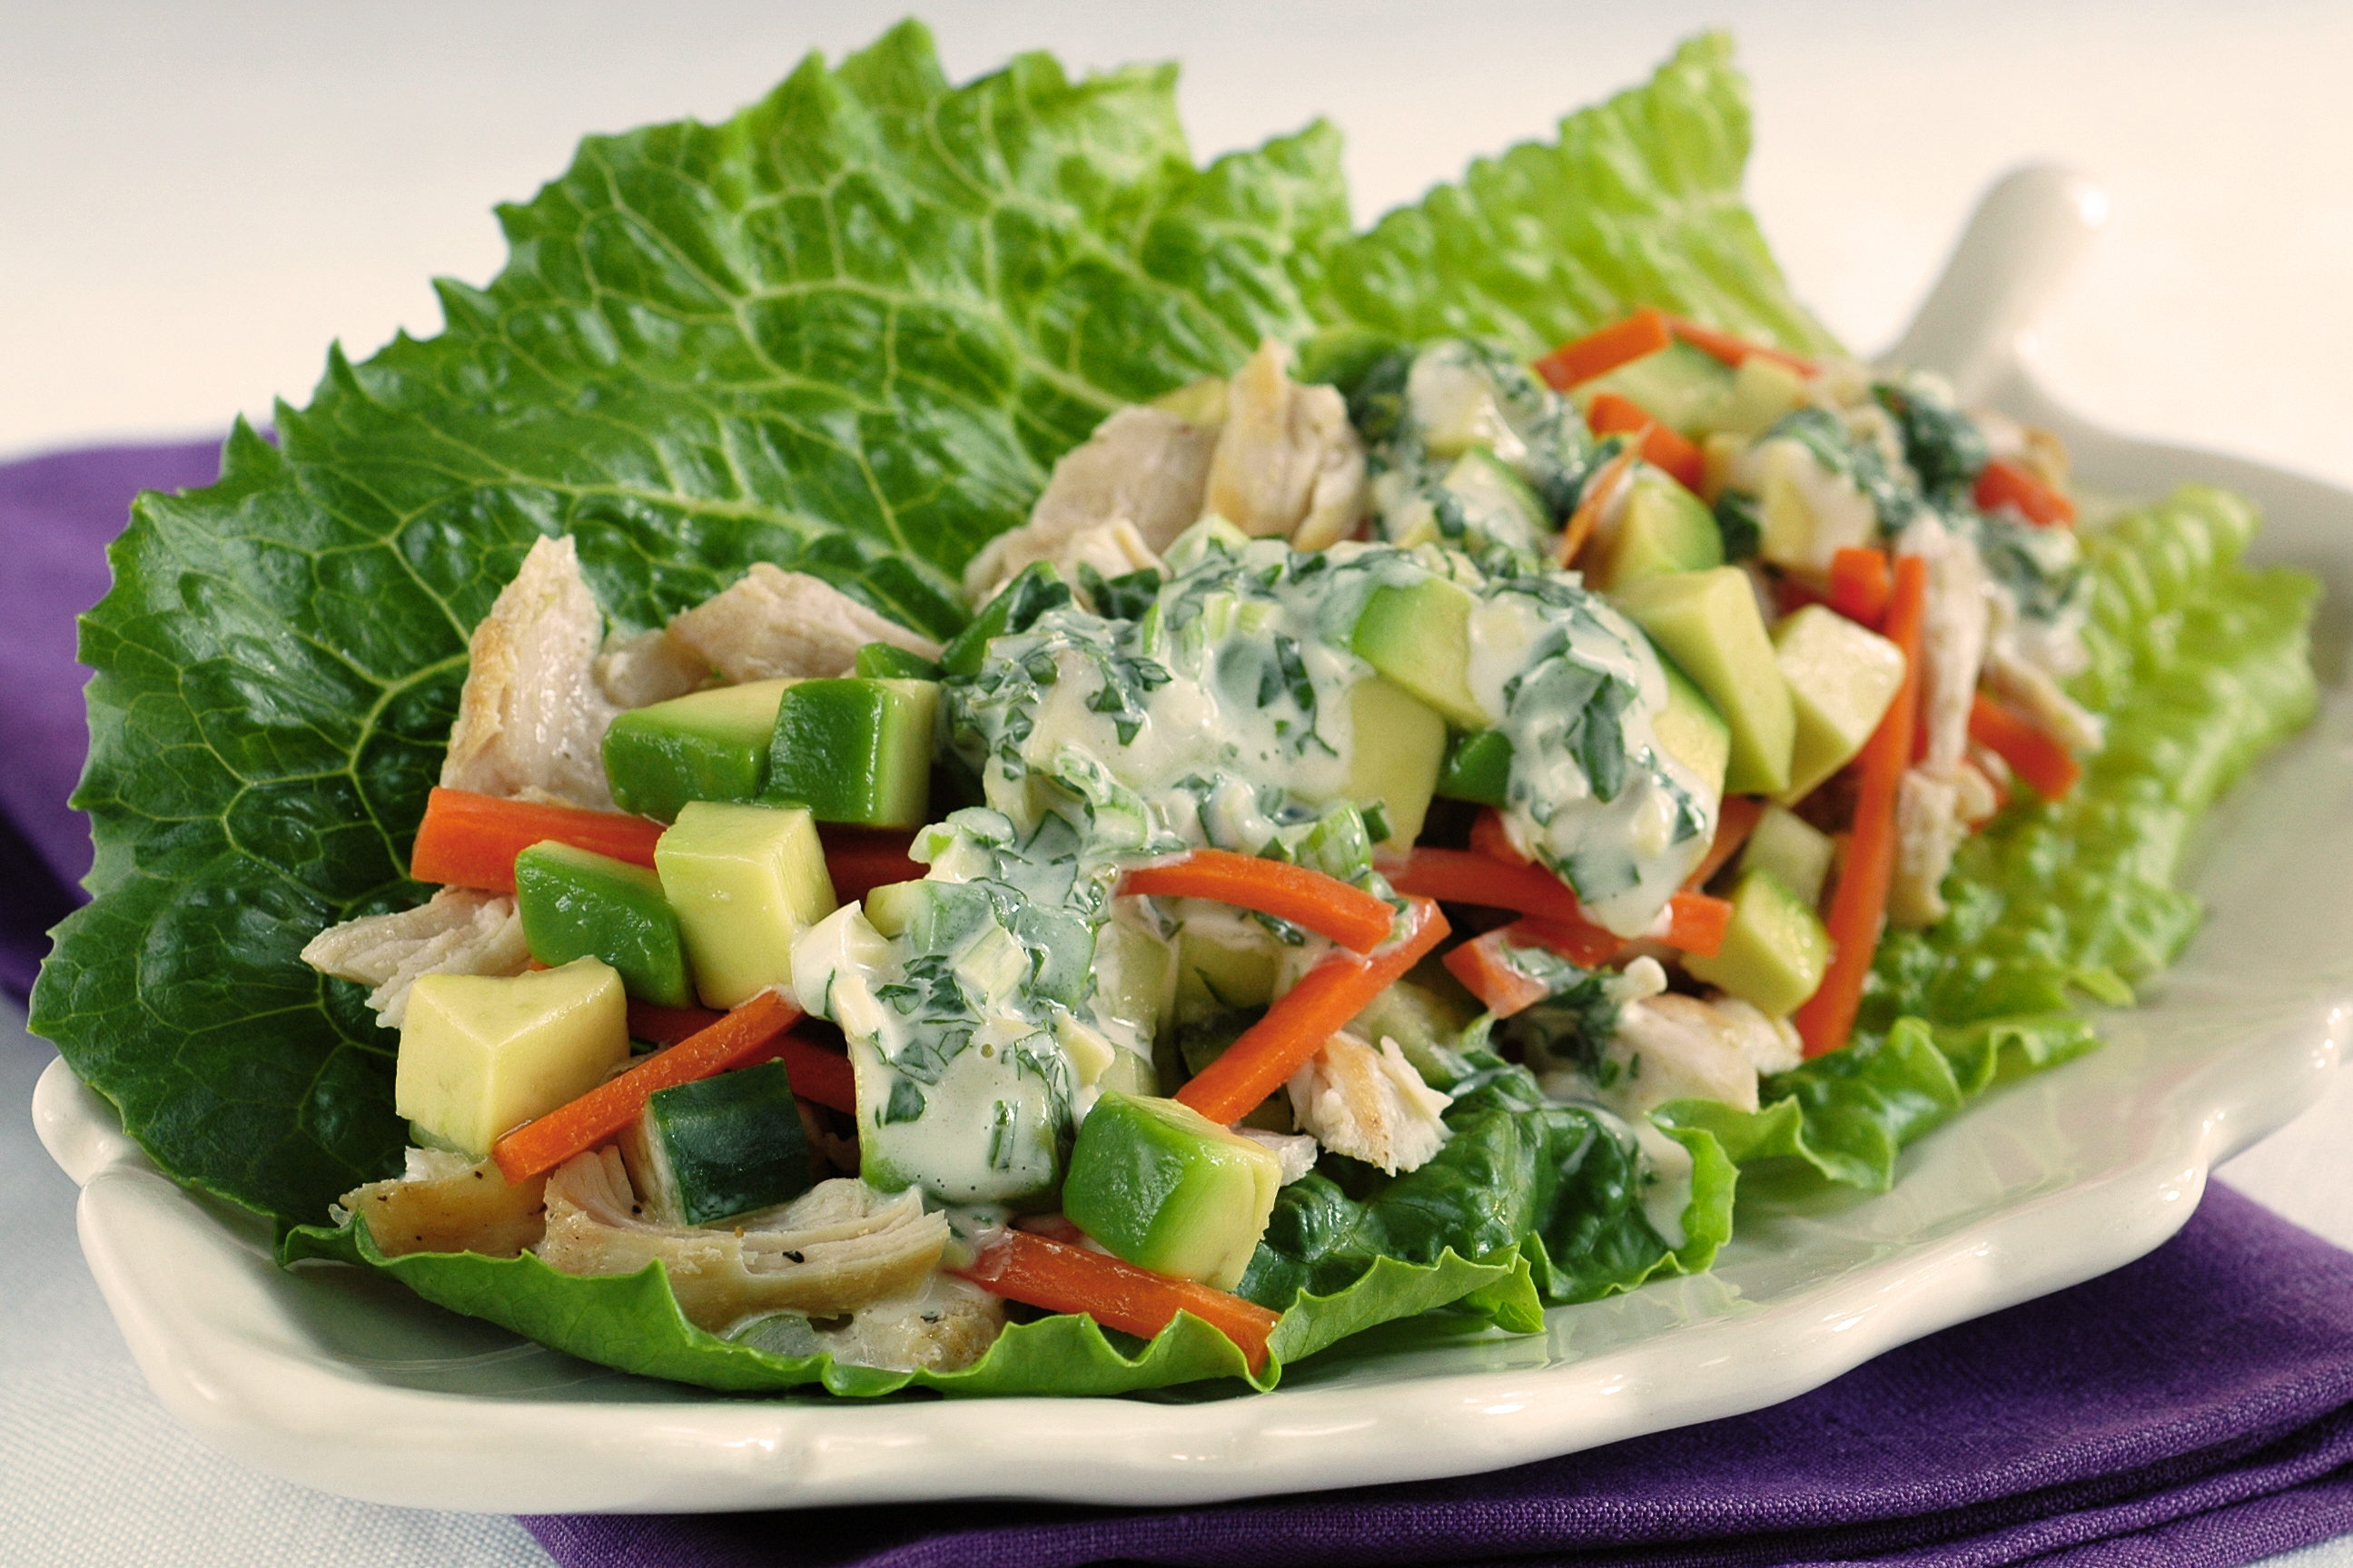 Chicken Lettuce Bundles with Sesame-Herb Dressing